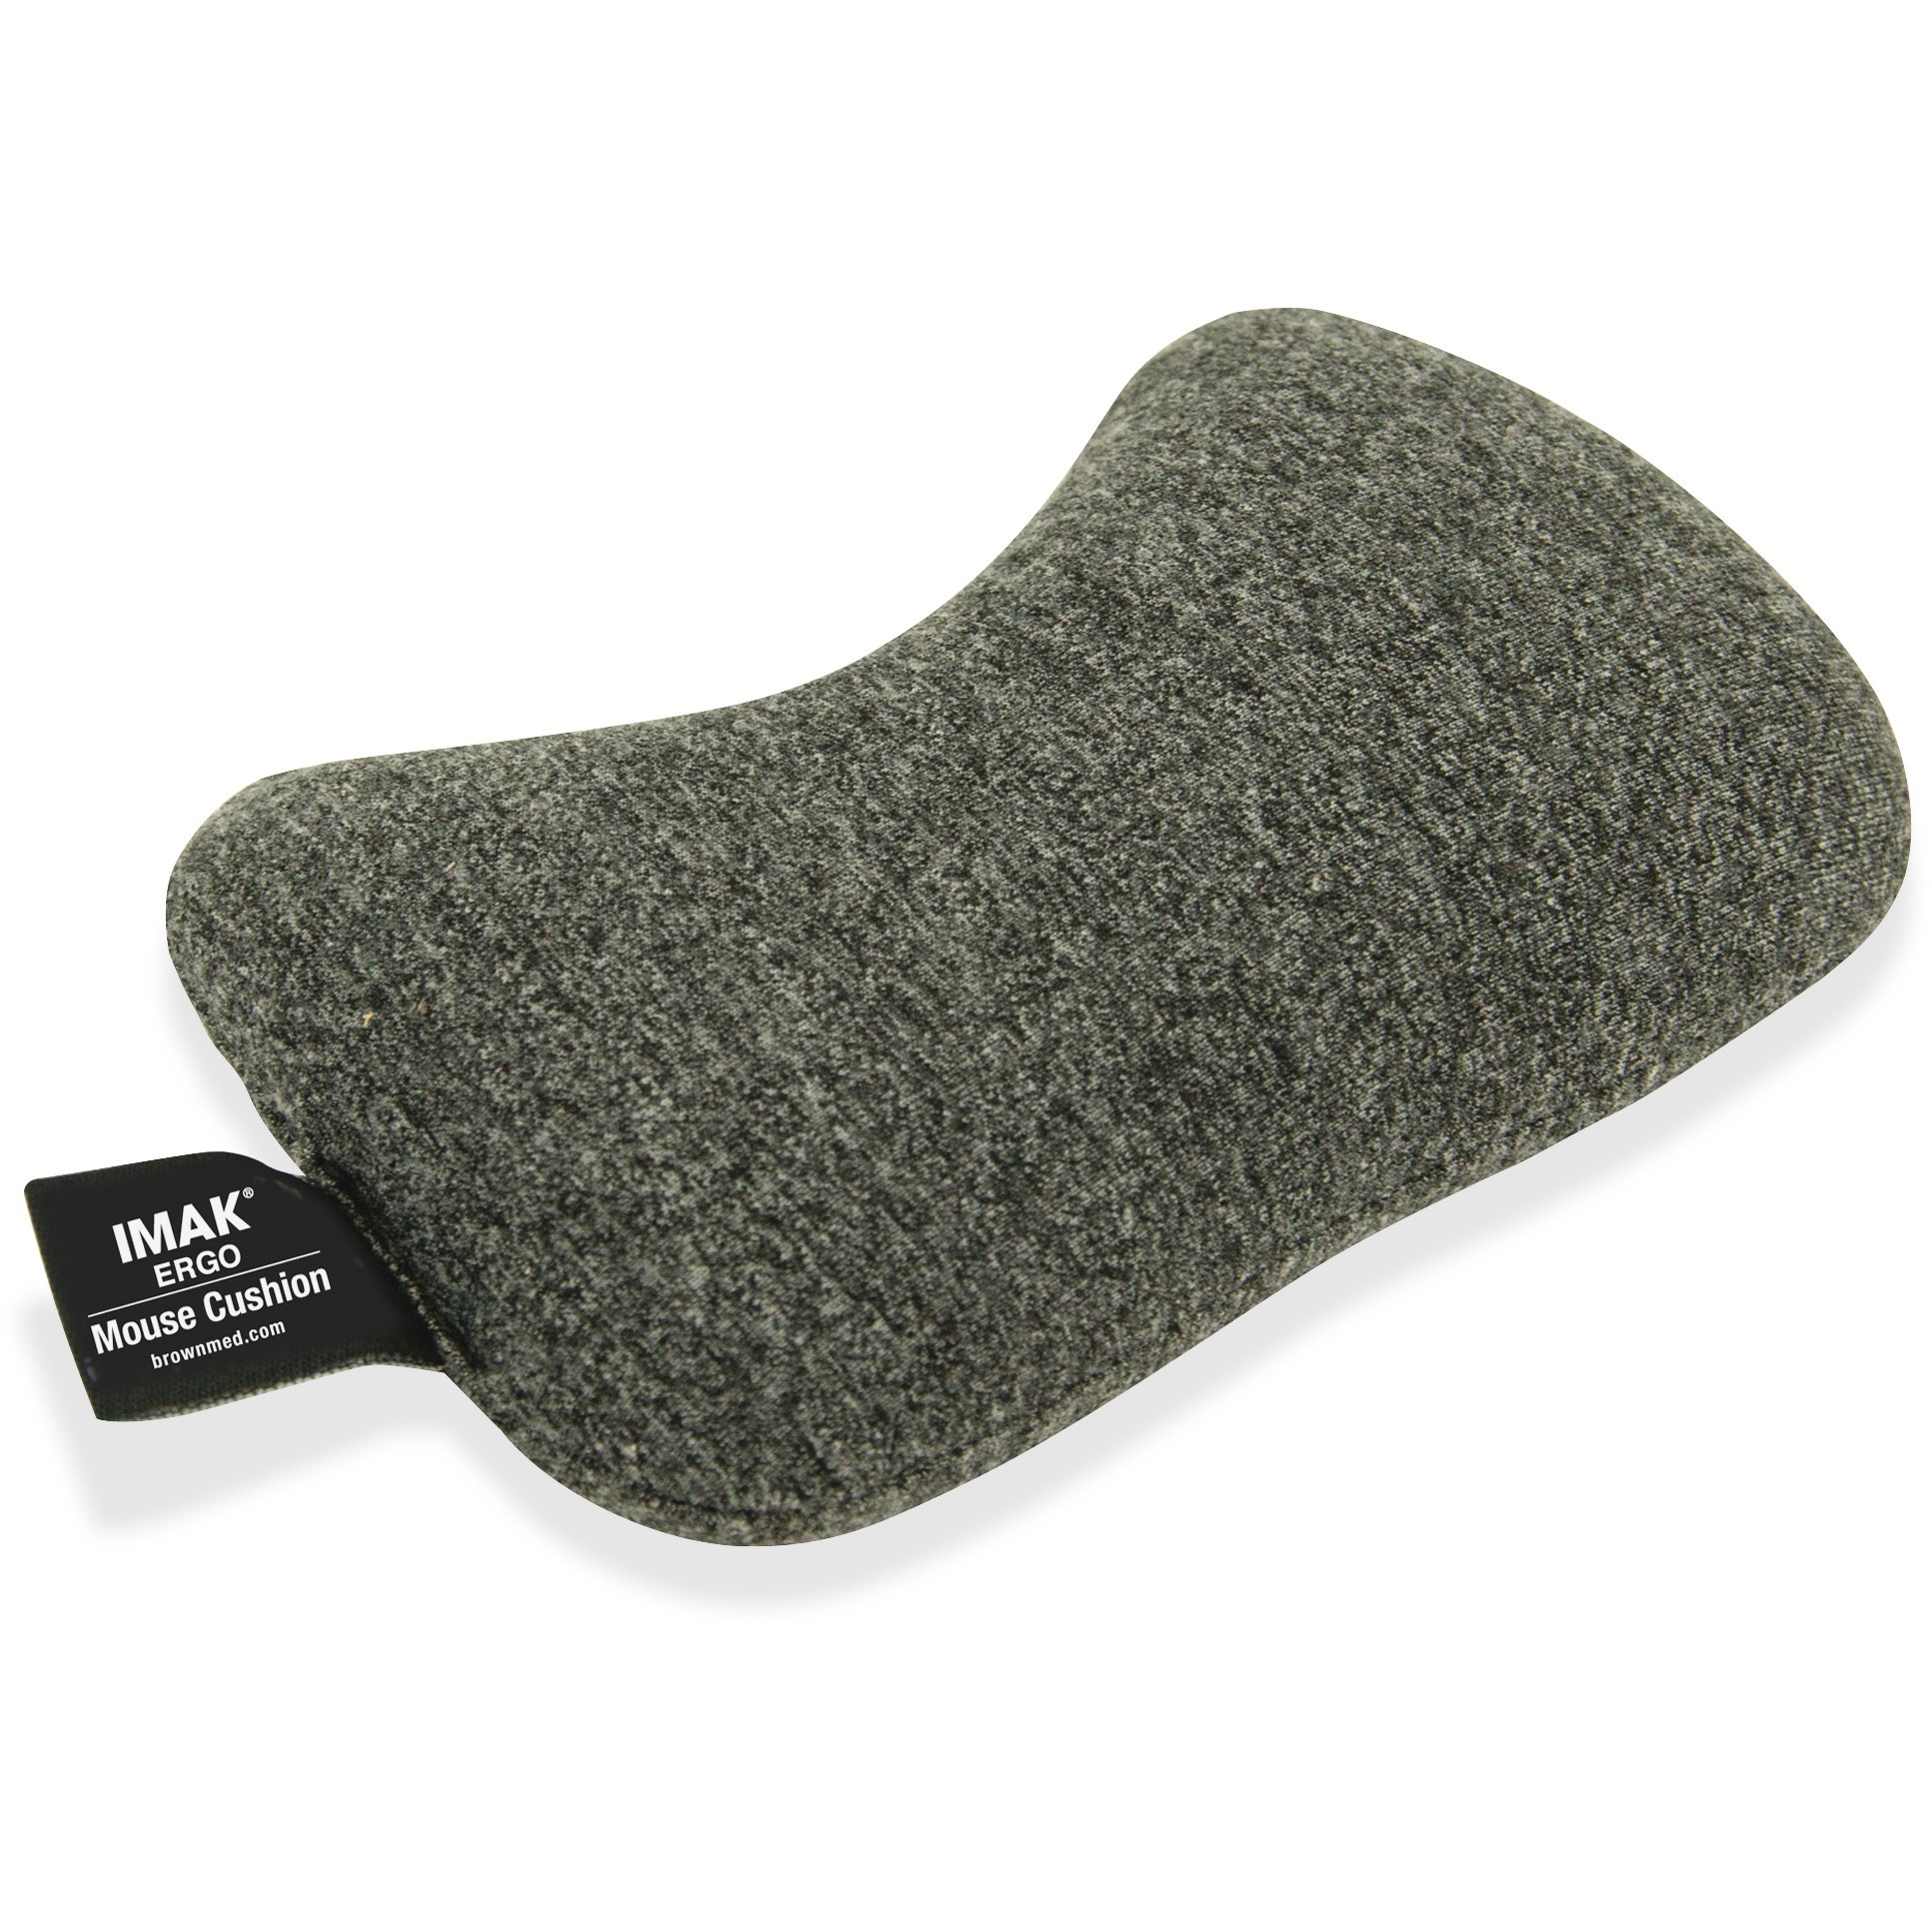 IMAK, IMA10166, Mouse Wrist Cushion, 1, Gray